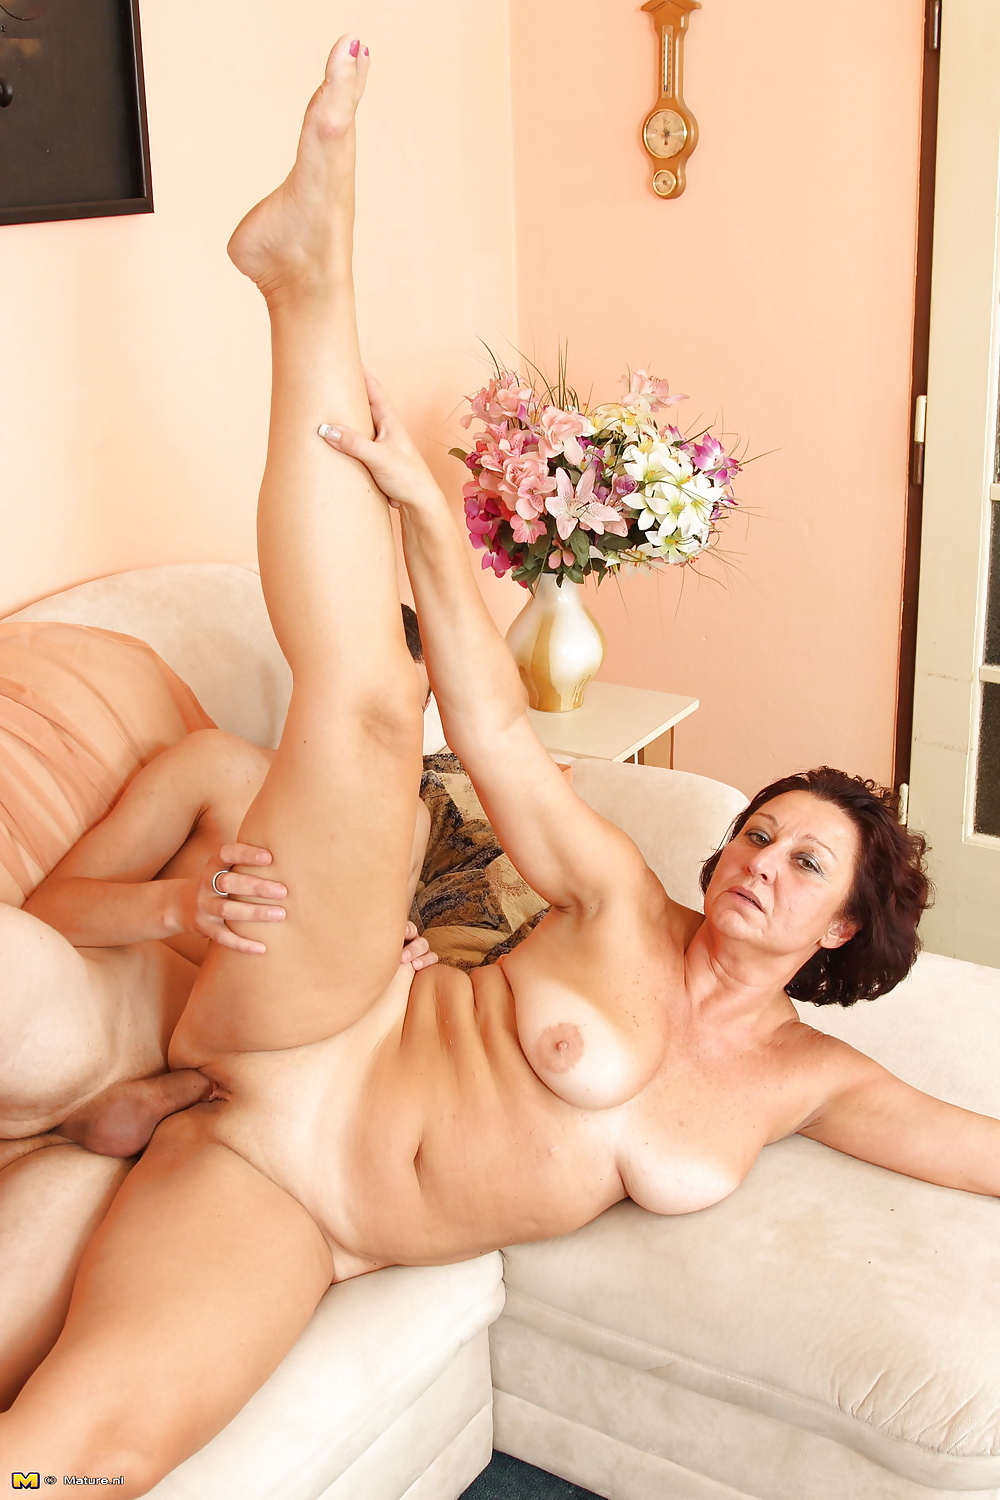 hilton-mature-panyt-sex-movies